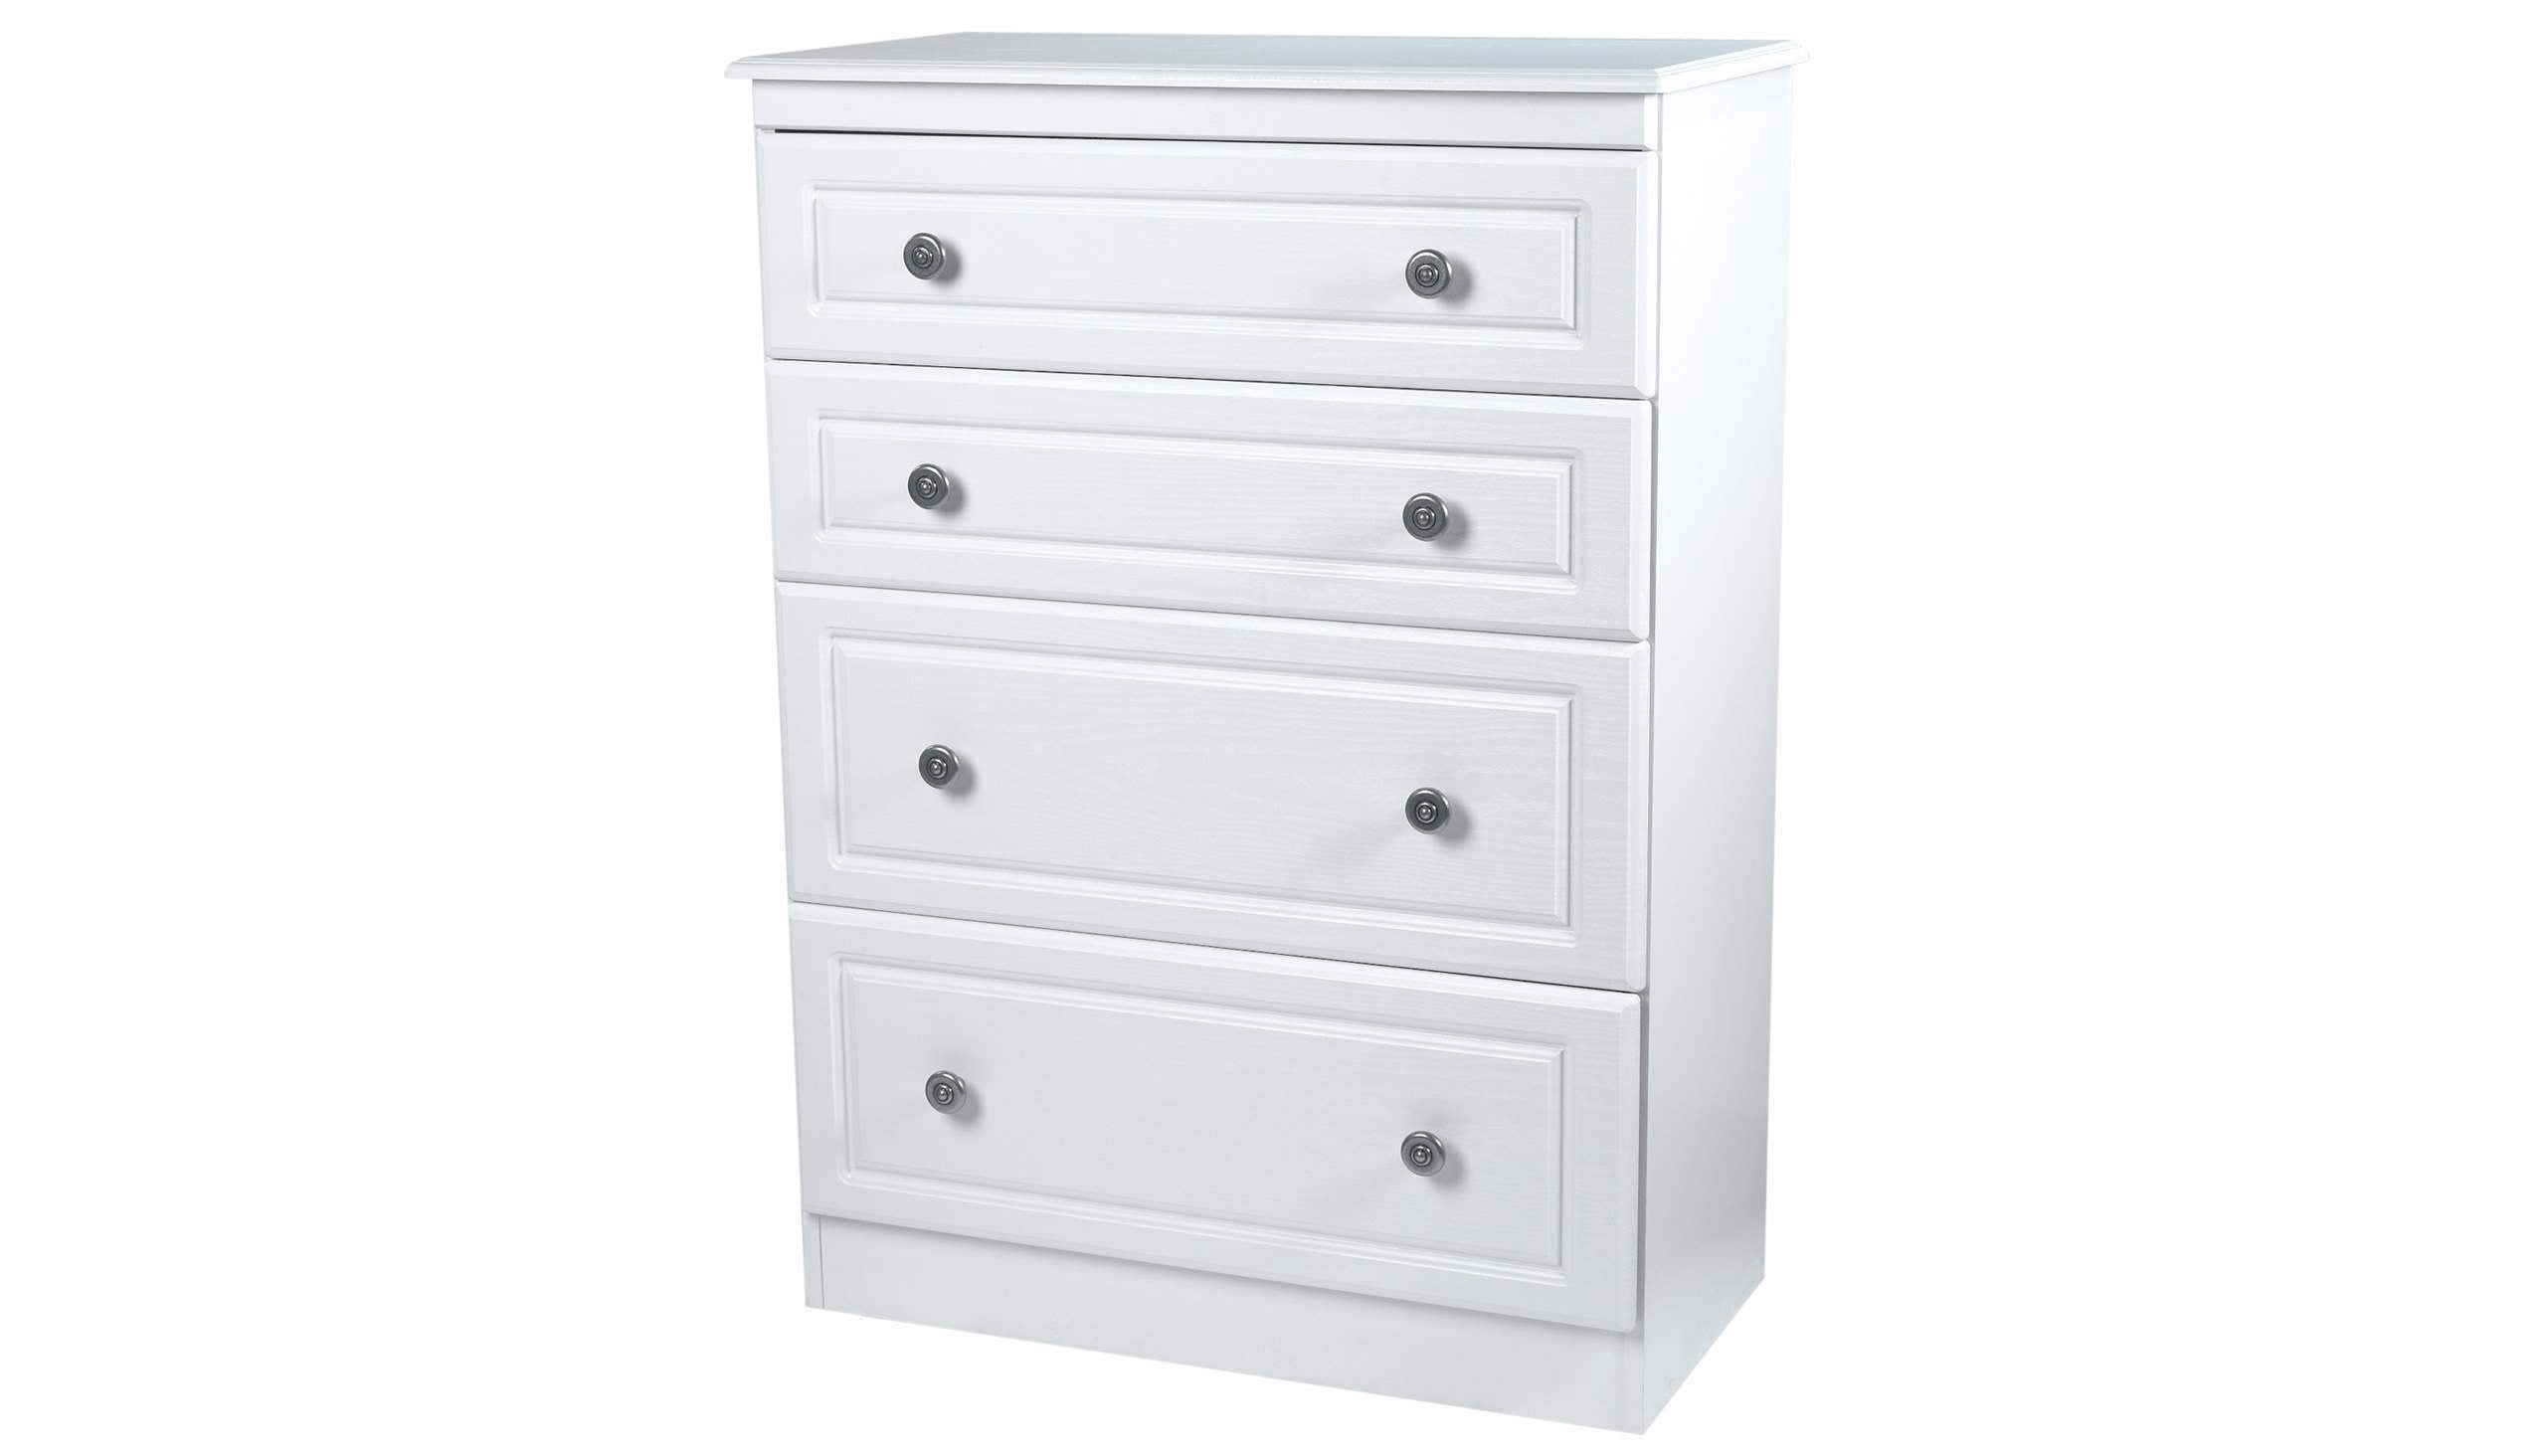 Pembroke 4 drawer deep chest - AHF Furniture & Carpets